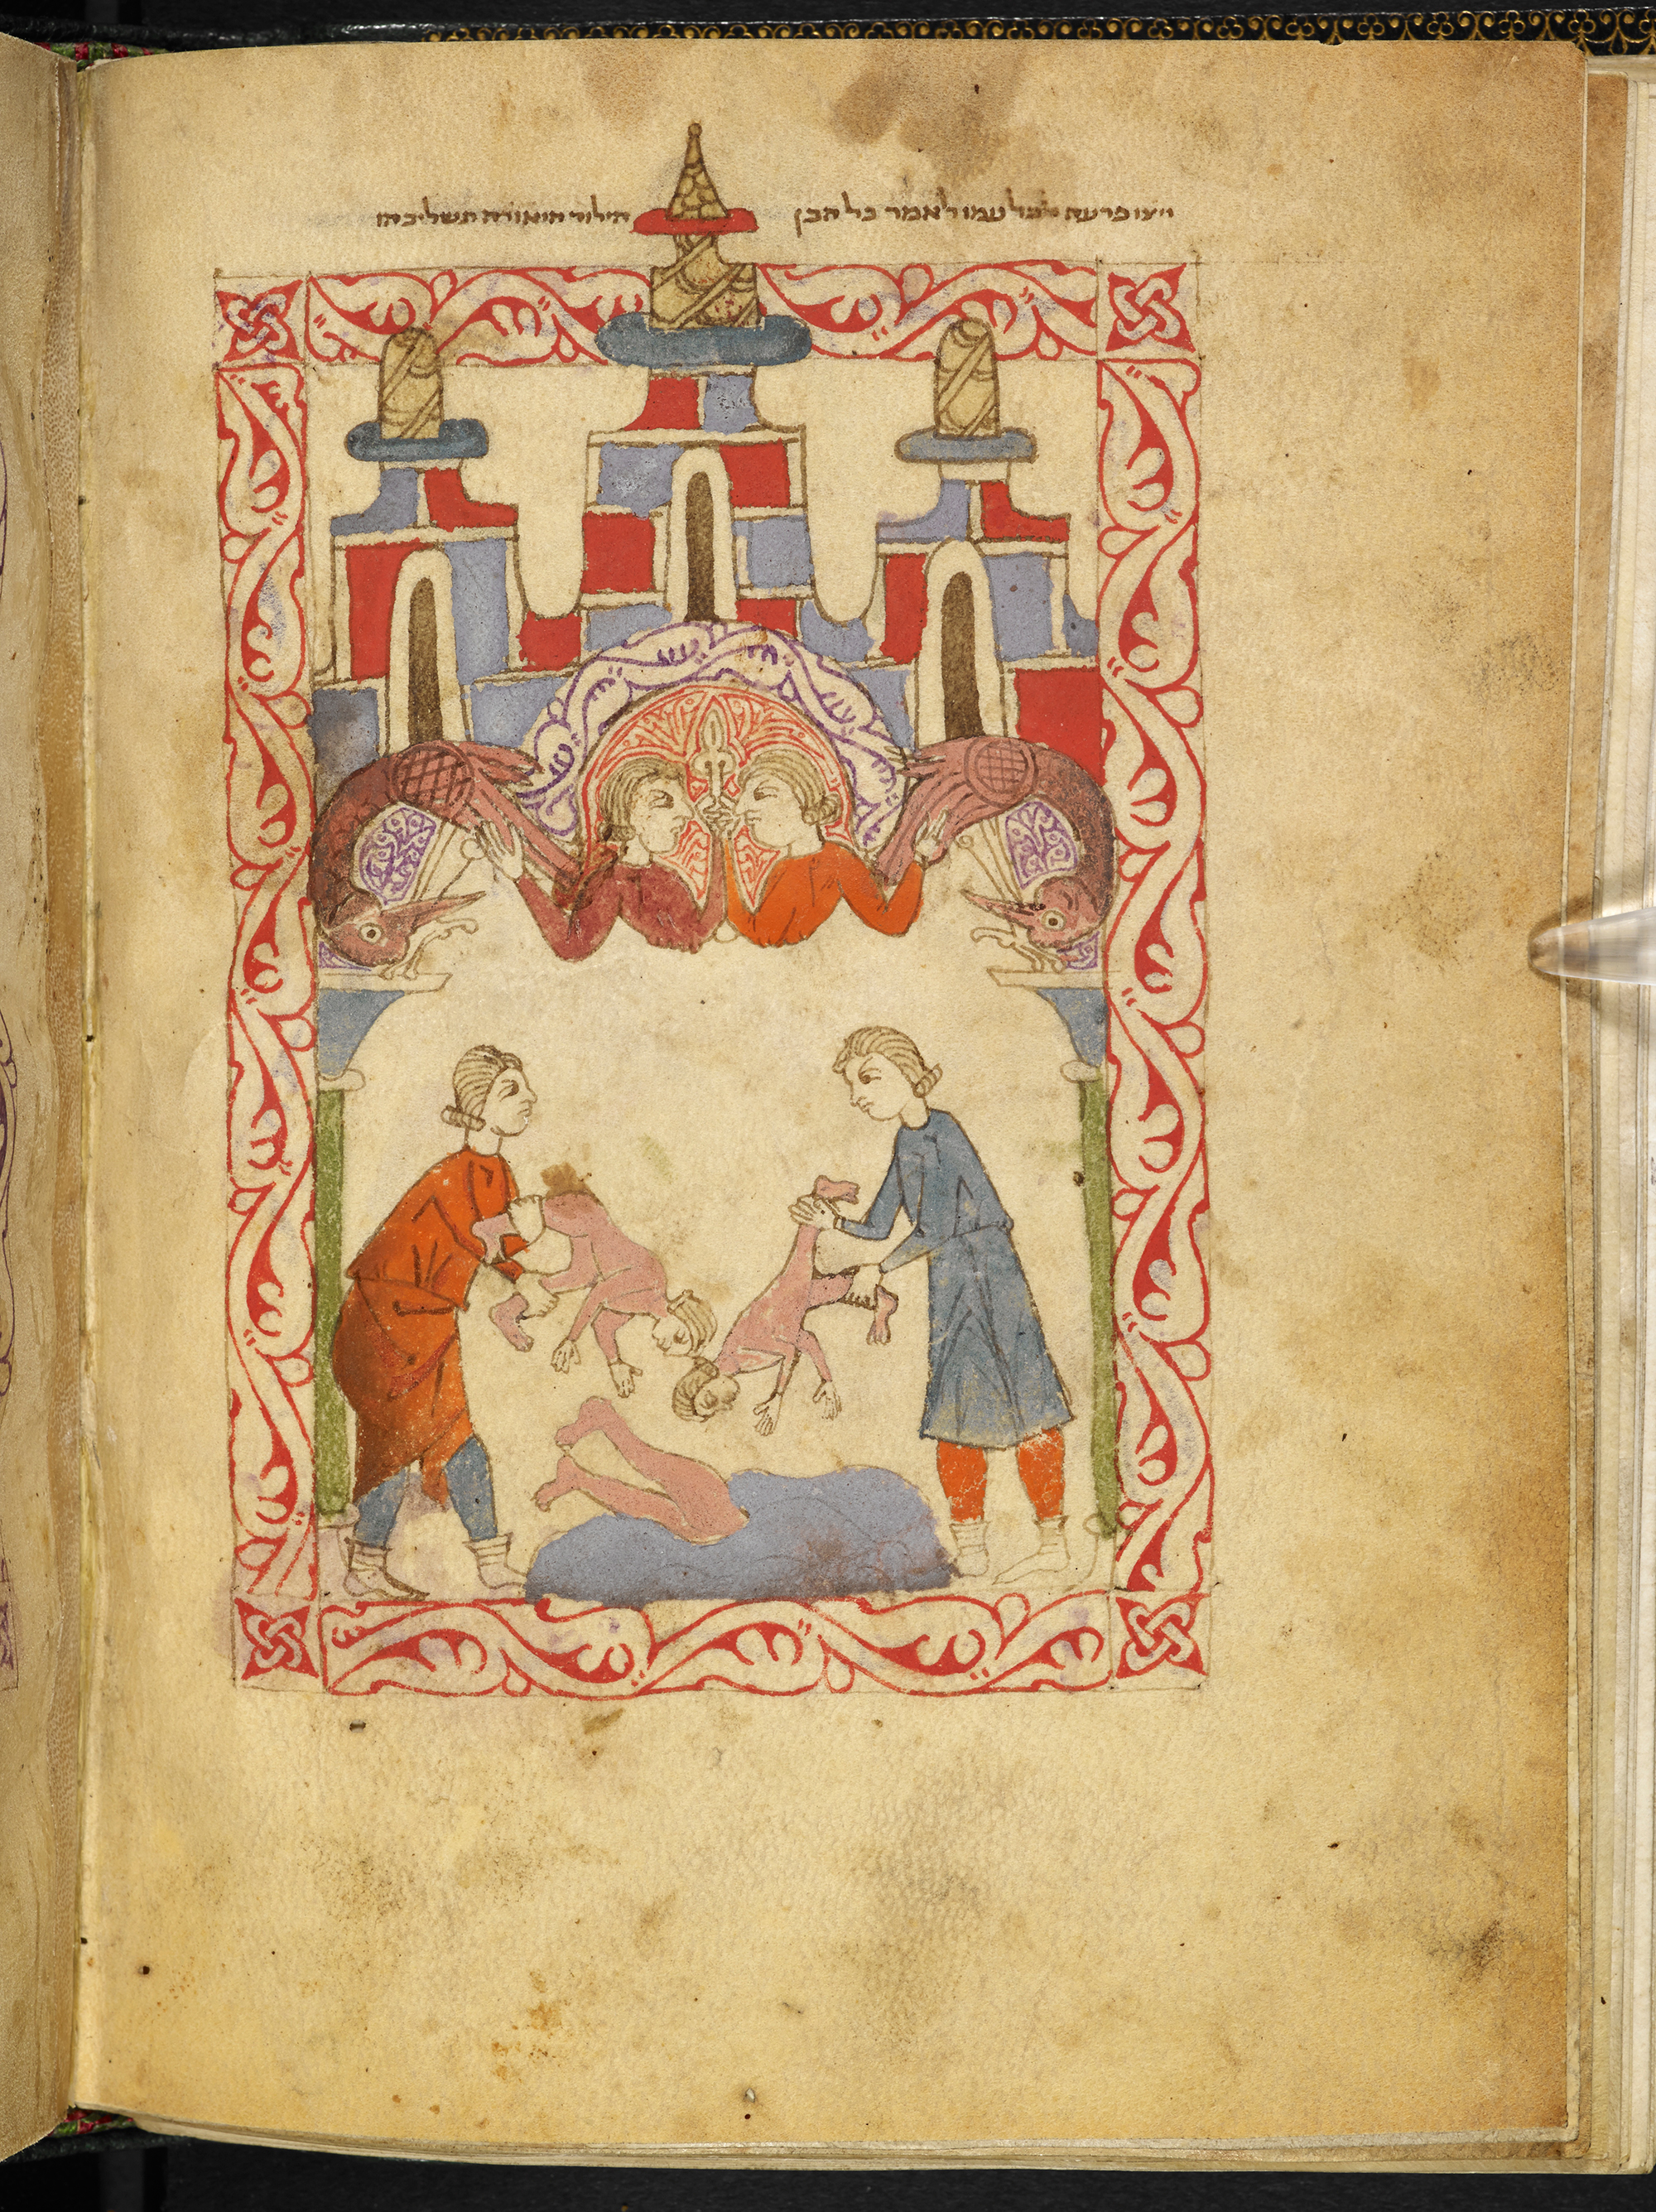 The Drowning of the Hebrew infants (Exodus, 1:22), The Hispano-Moresque Hagadah: Haggadah for Passover according to the Spanish rite, Or 2737, Hebrew Manuscripts Digitisation Project, British Library